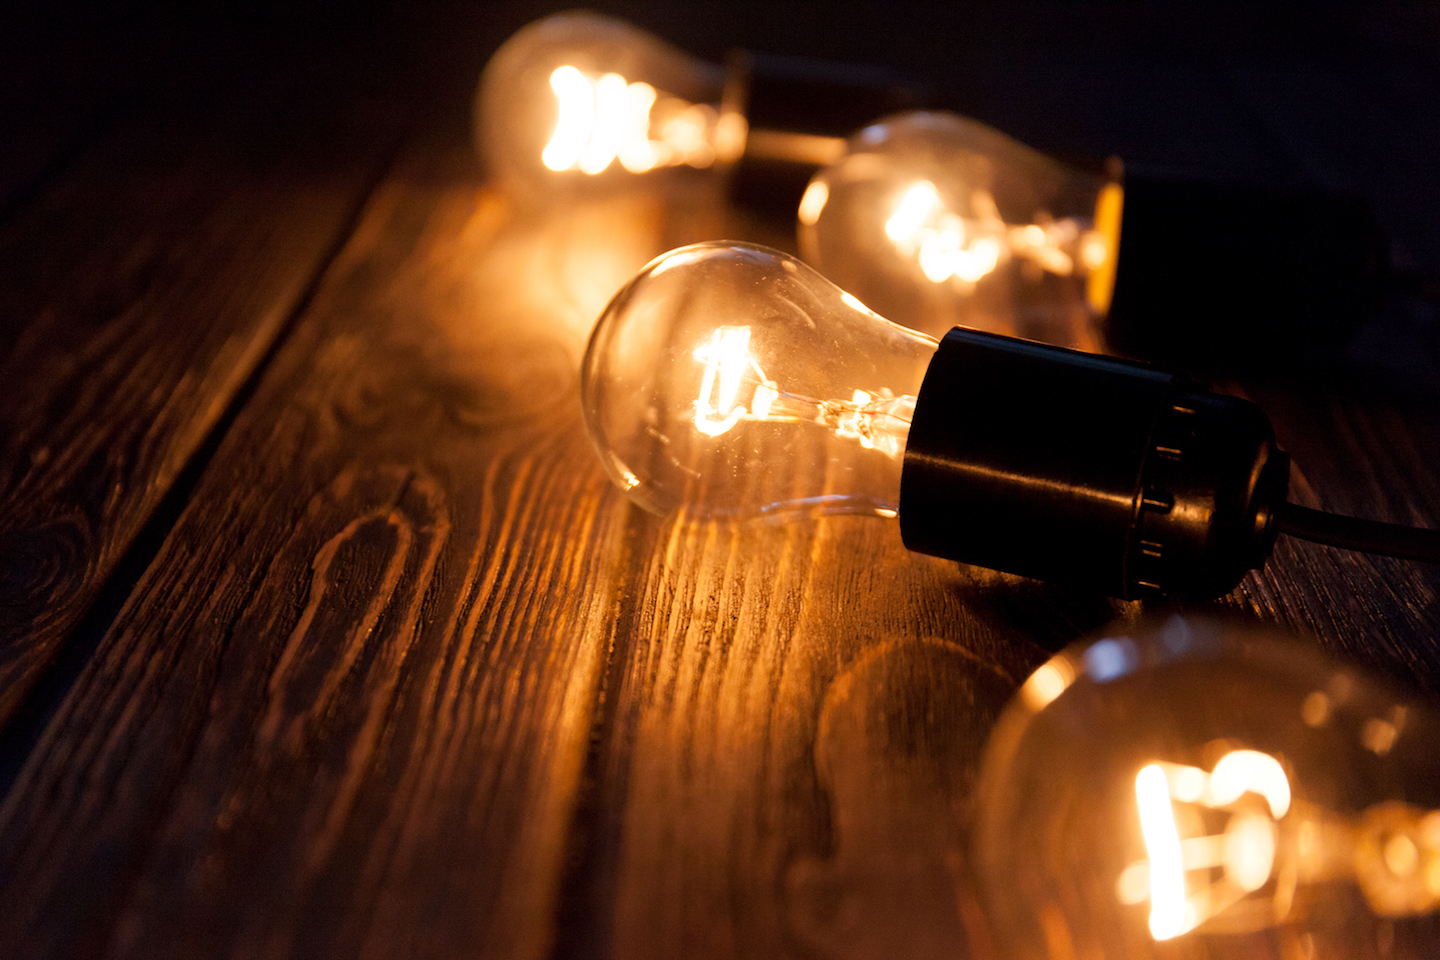 Lightbulbs consume a certain amount of power, according to the formula P=VI